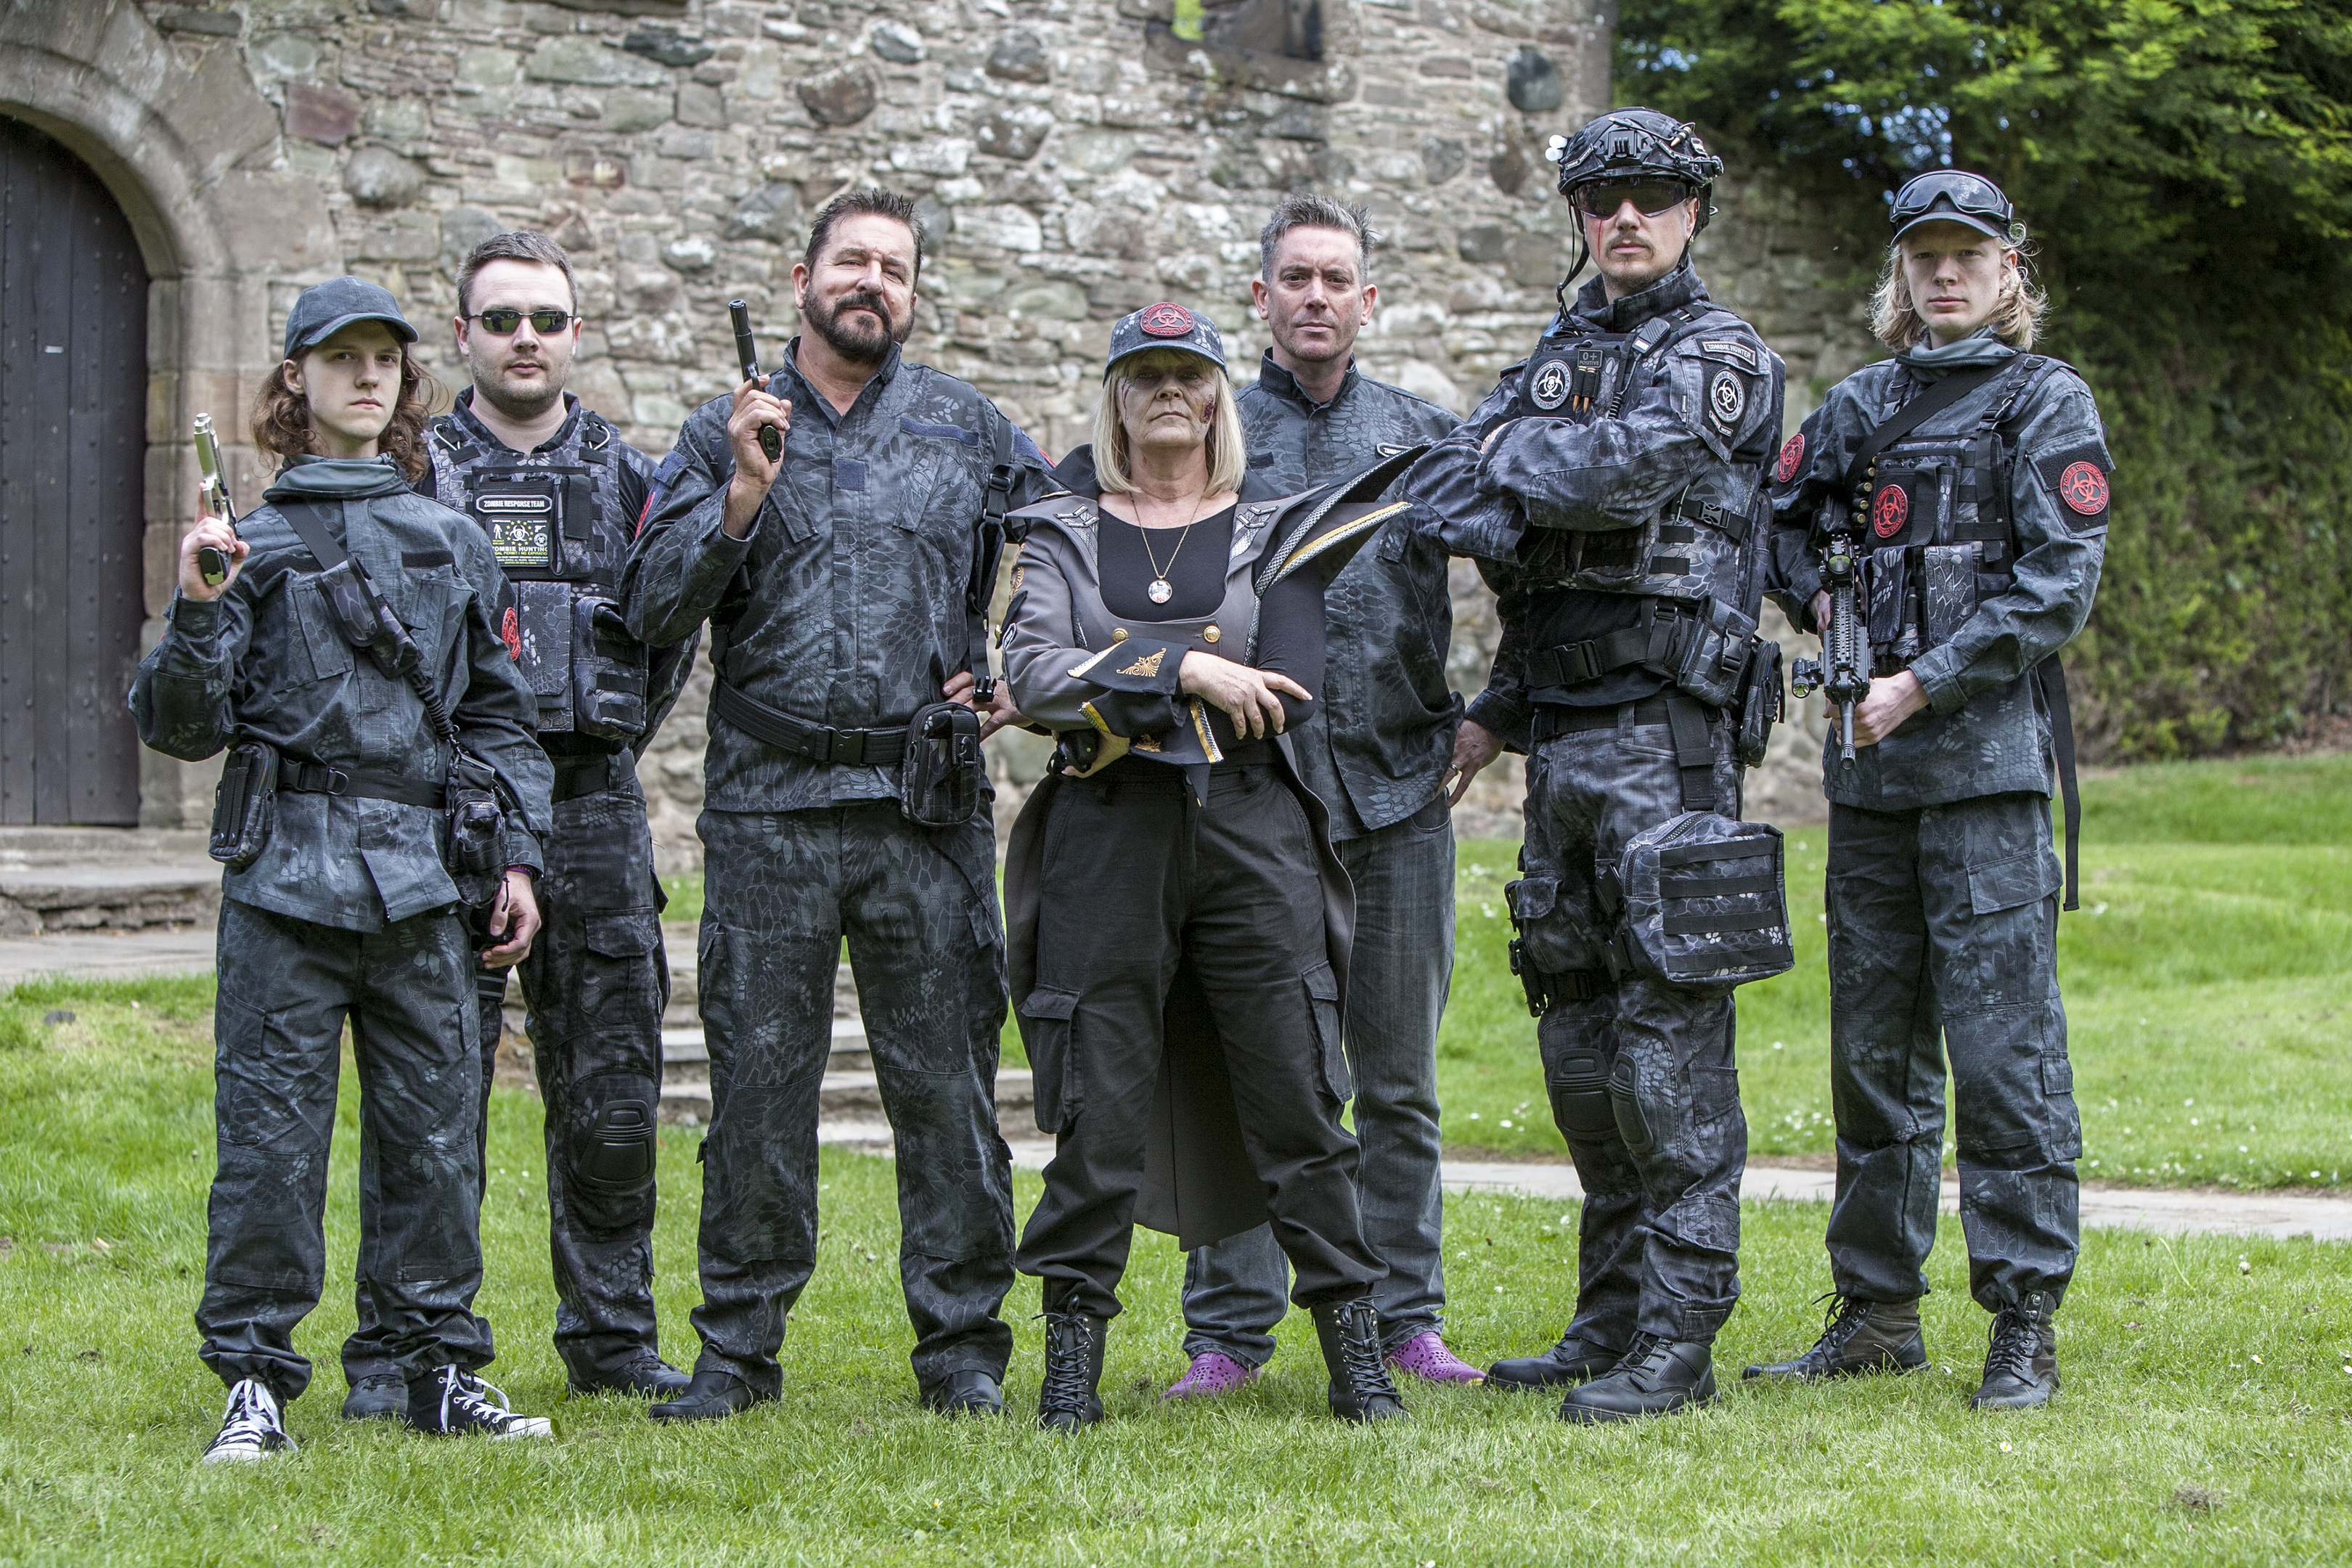 The Zombie Outreach Response Team from last year's event.